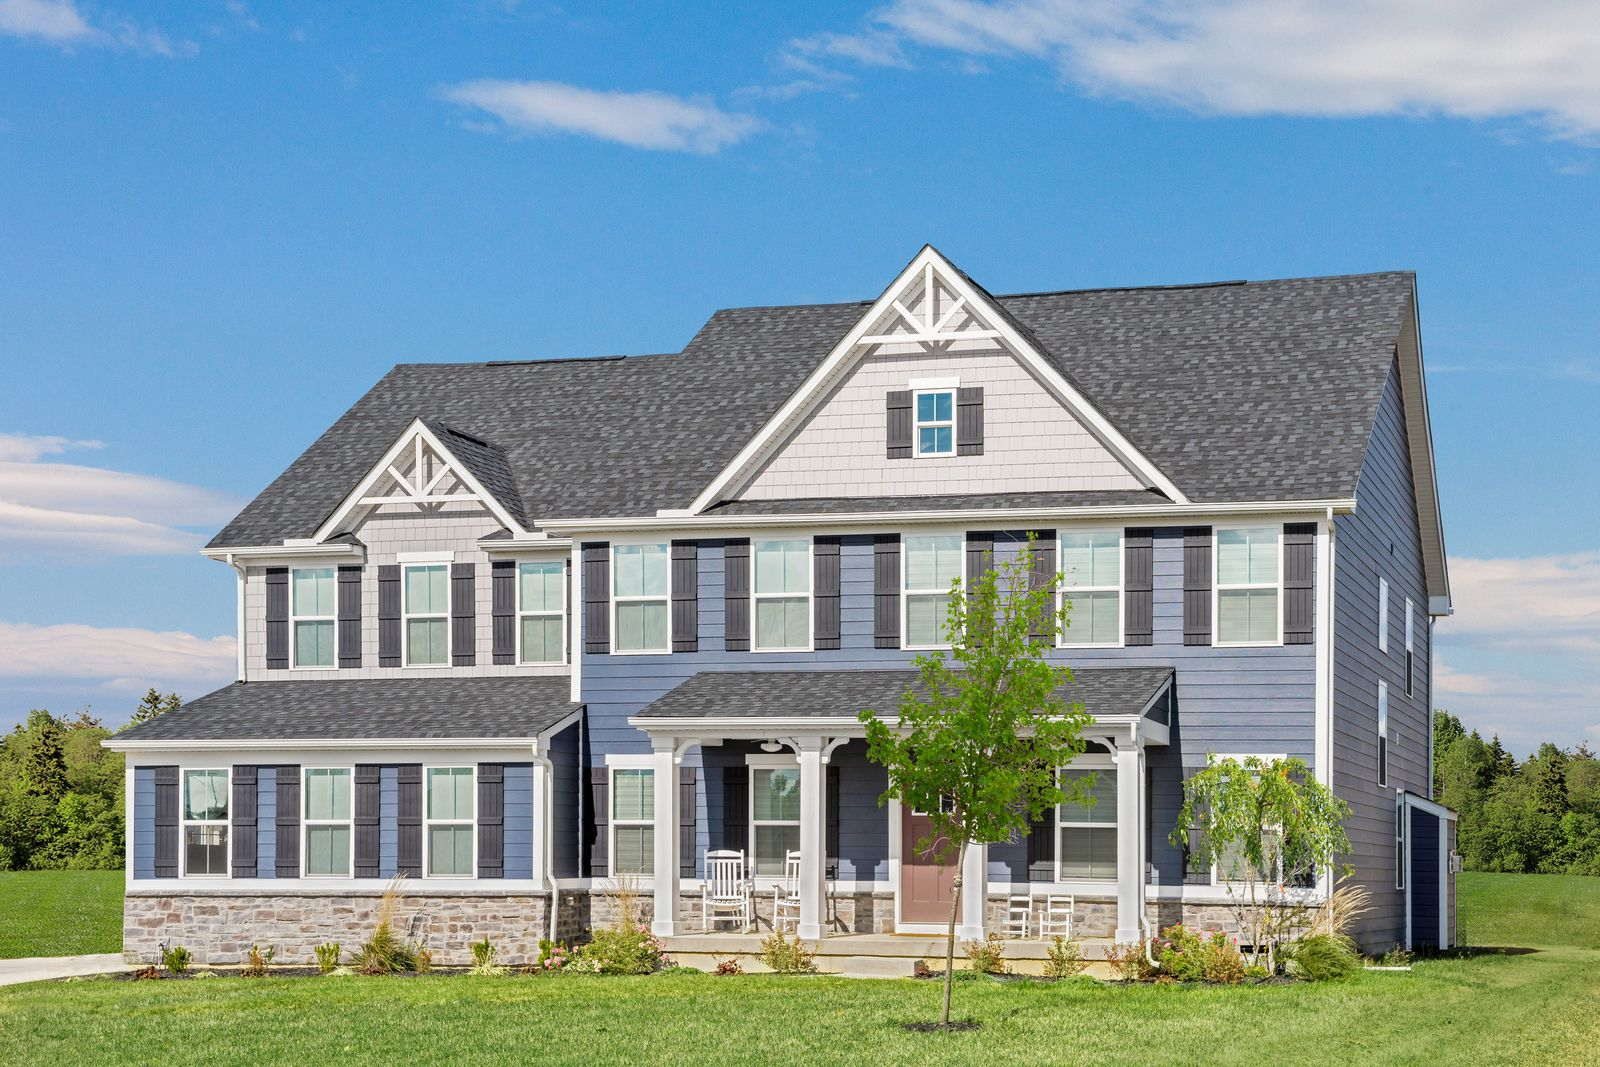 The Landings at Meadowville. Destination Home.:You've discovered Chesterfield's hidden gem. Packed w/ amenities along the James River & set in the Thomas Dale district. Single-family homes w/ max curb appeal.Schedule your visit today!